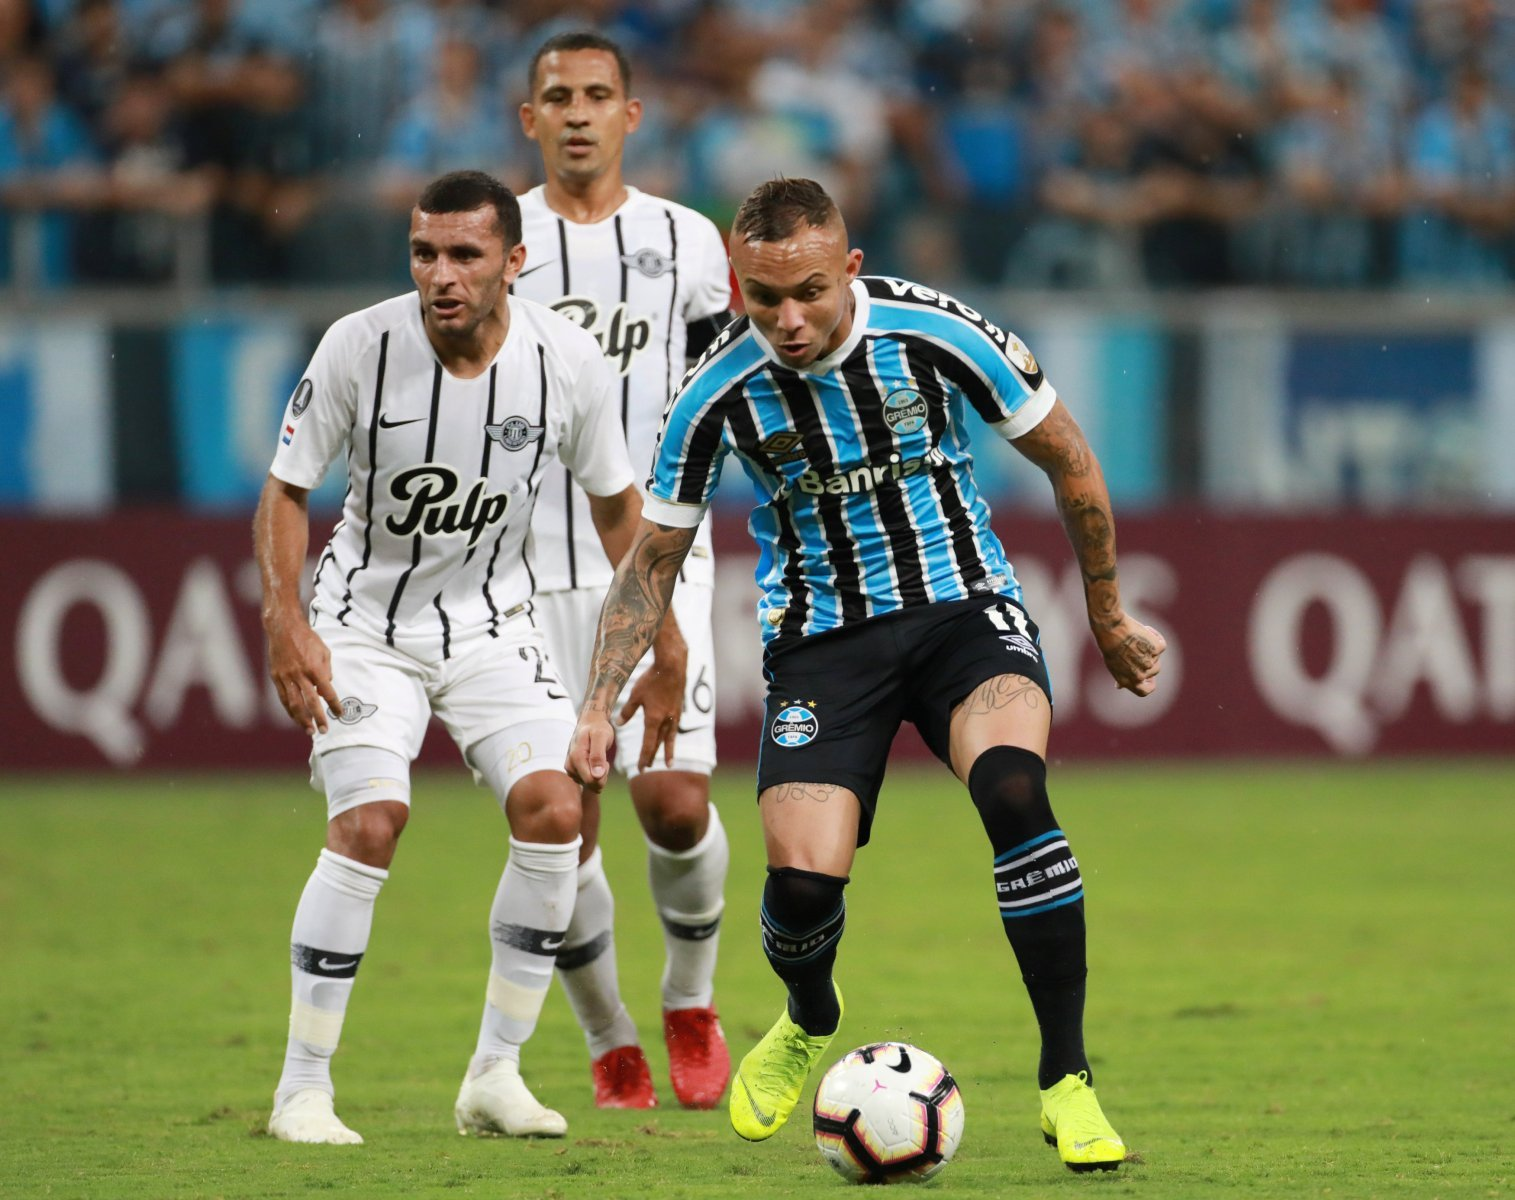 Arsenal: Everton Soares deal edges closer as officials jet to Brazil